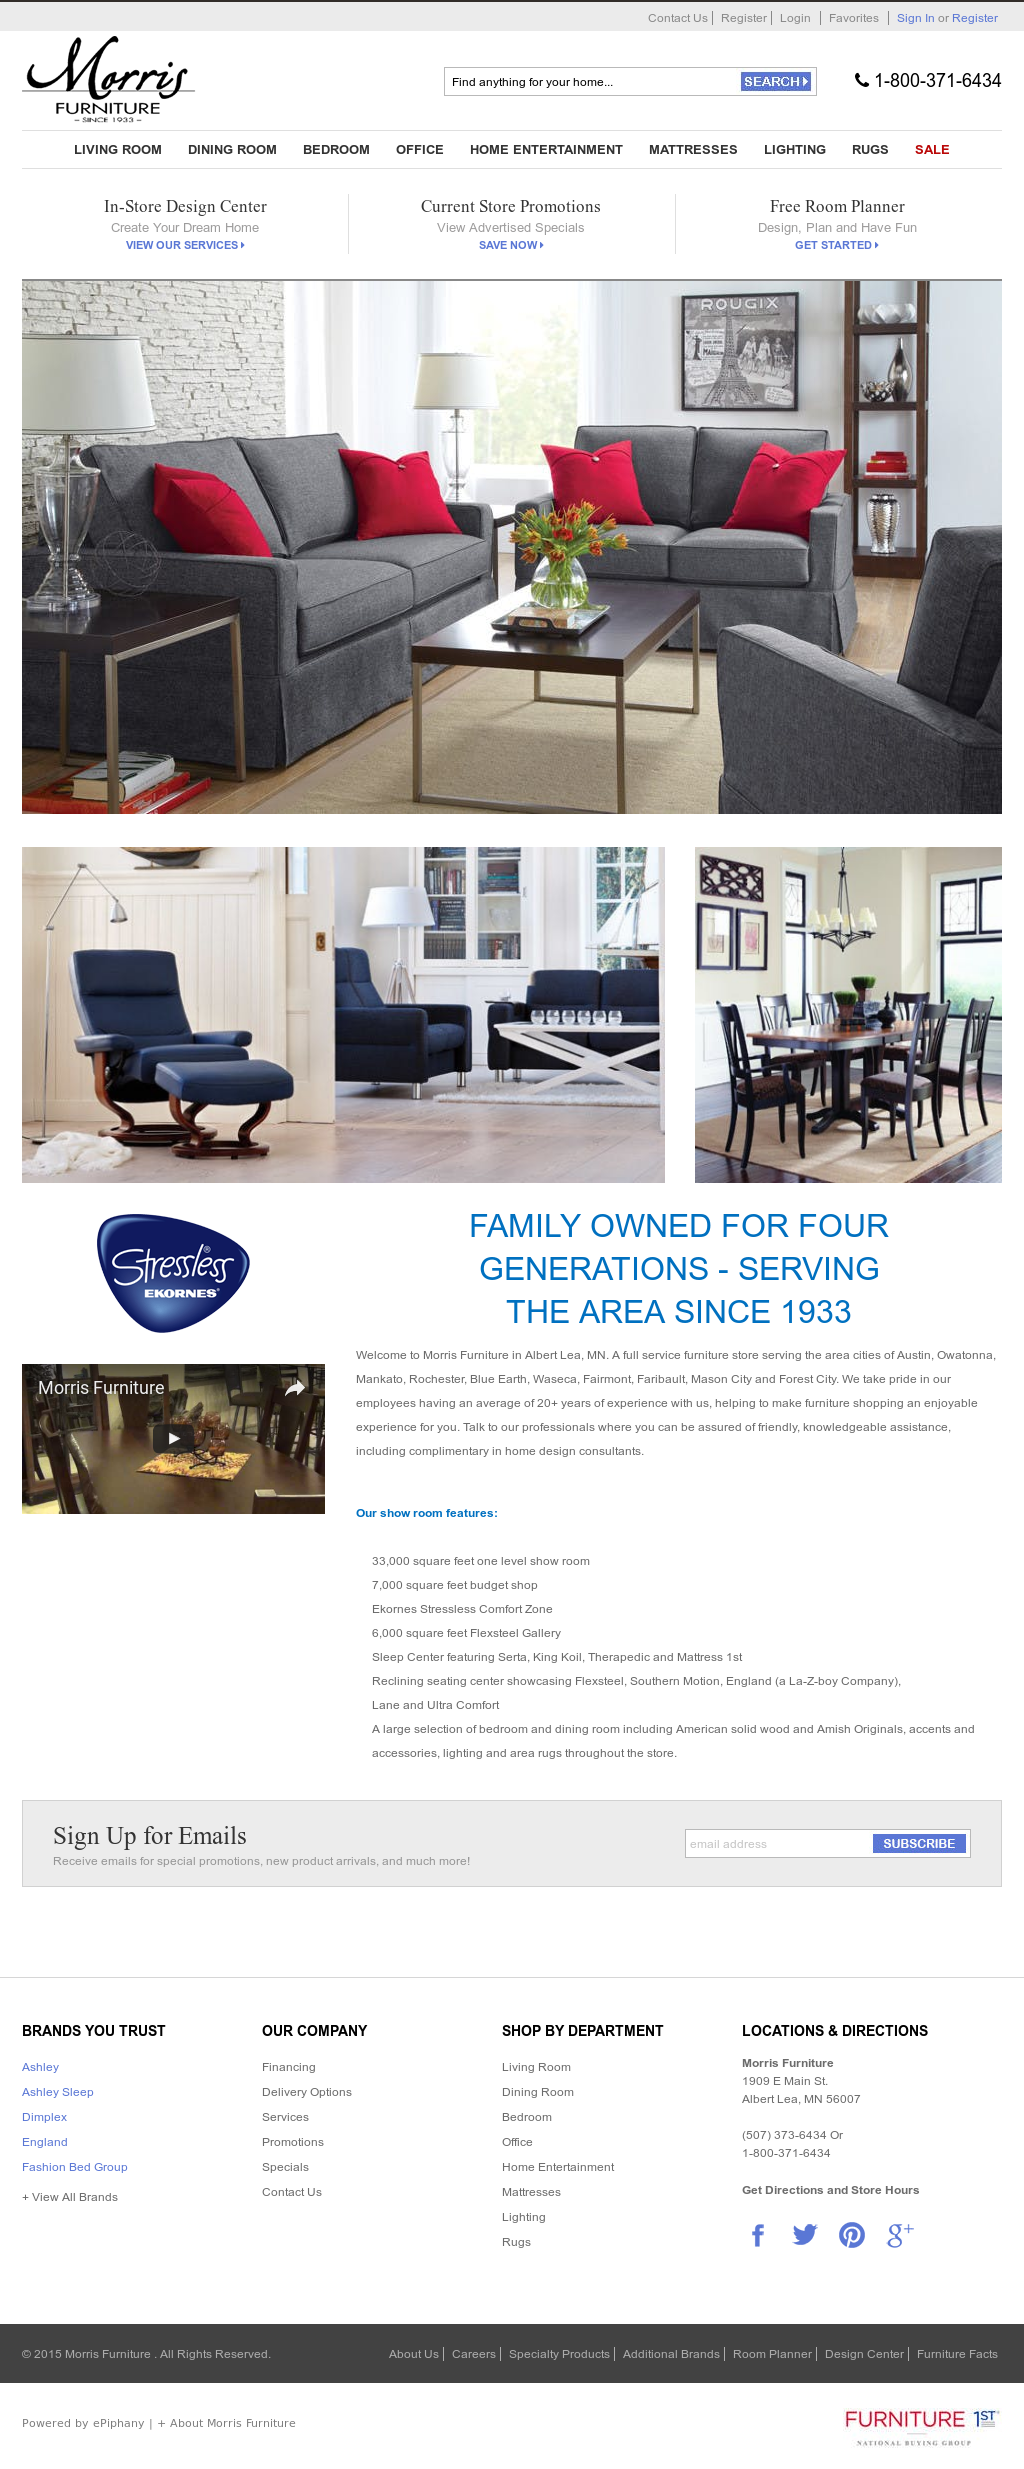 Morrisfurniture Competitors, Revenue And Employees   Owler Company Profile